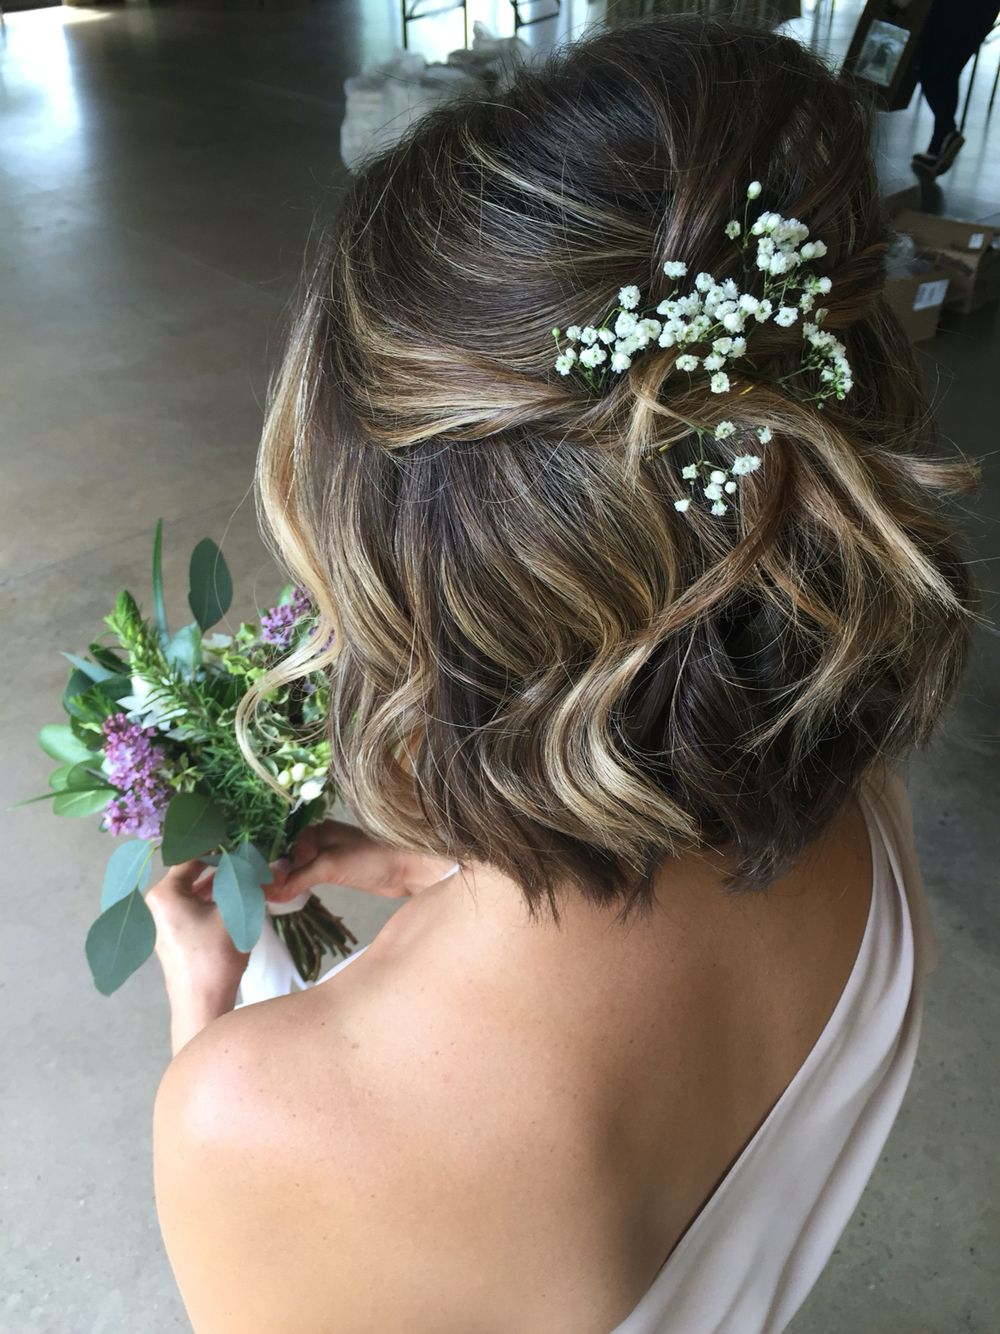 Short hair formal style by JeanetteGillin http://eroticwadewisdom ...